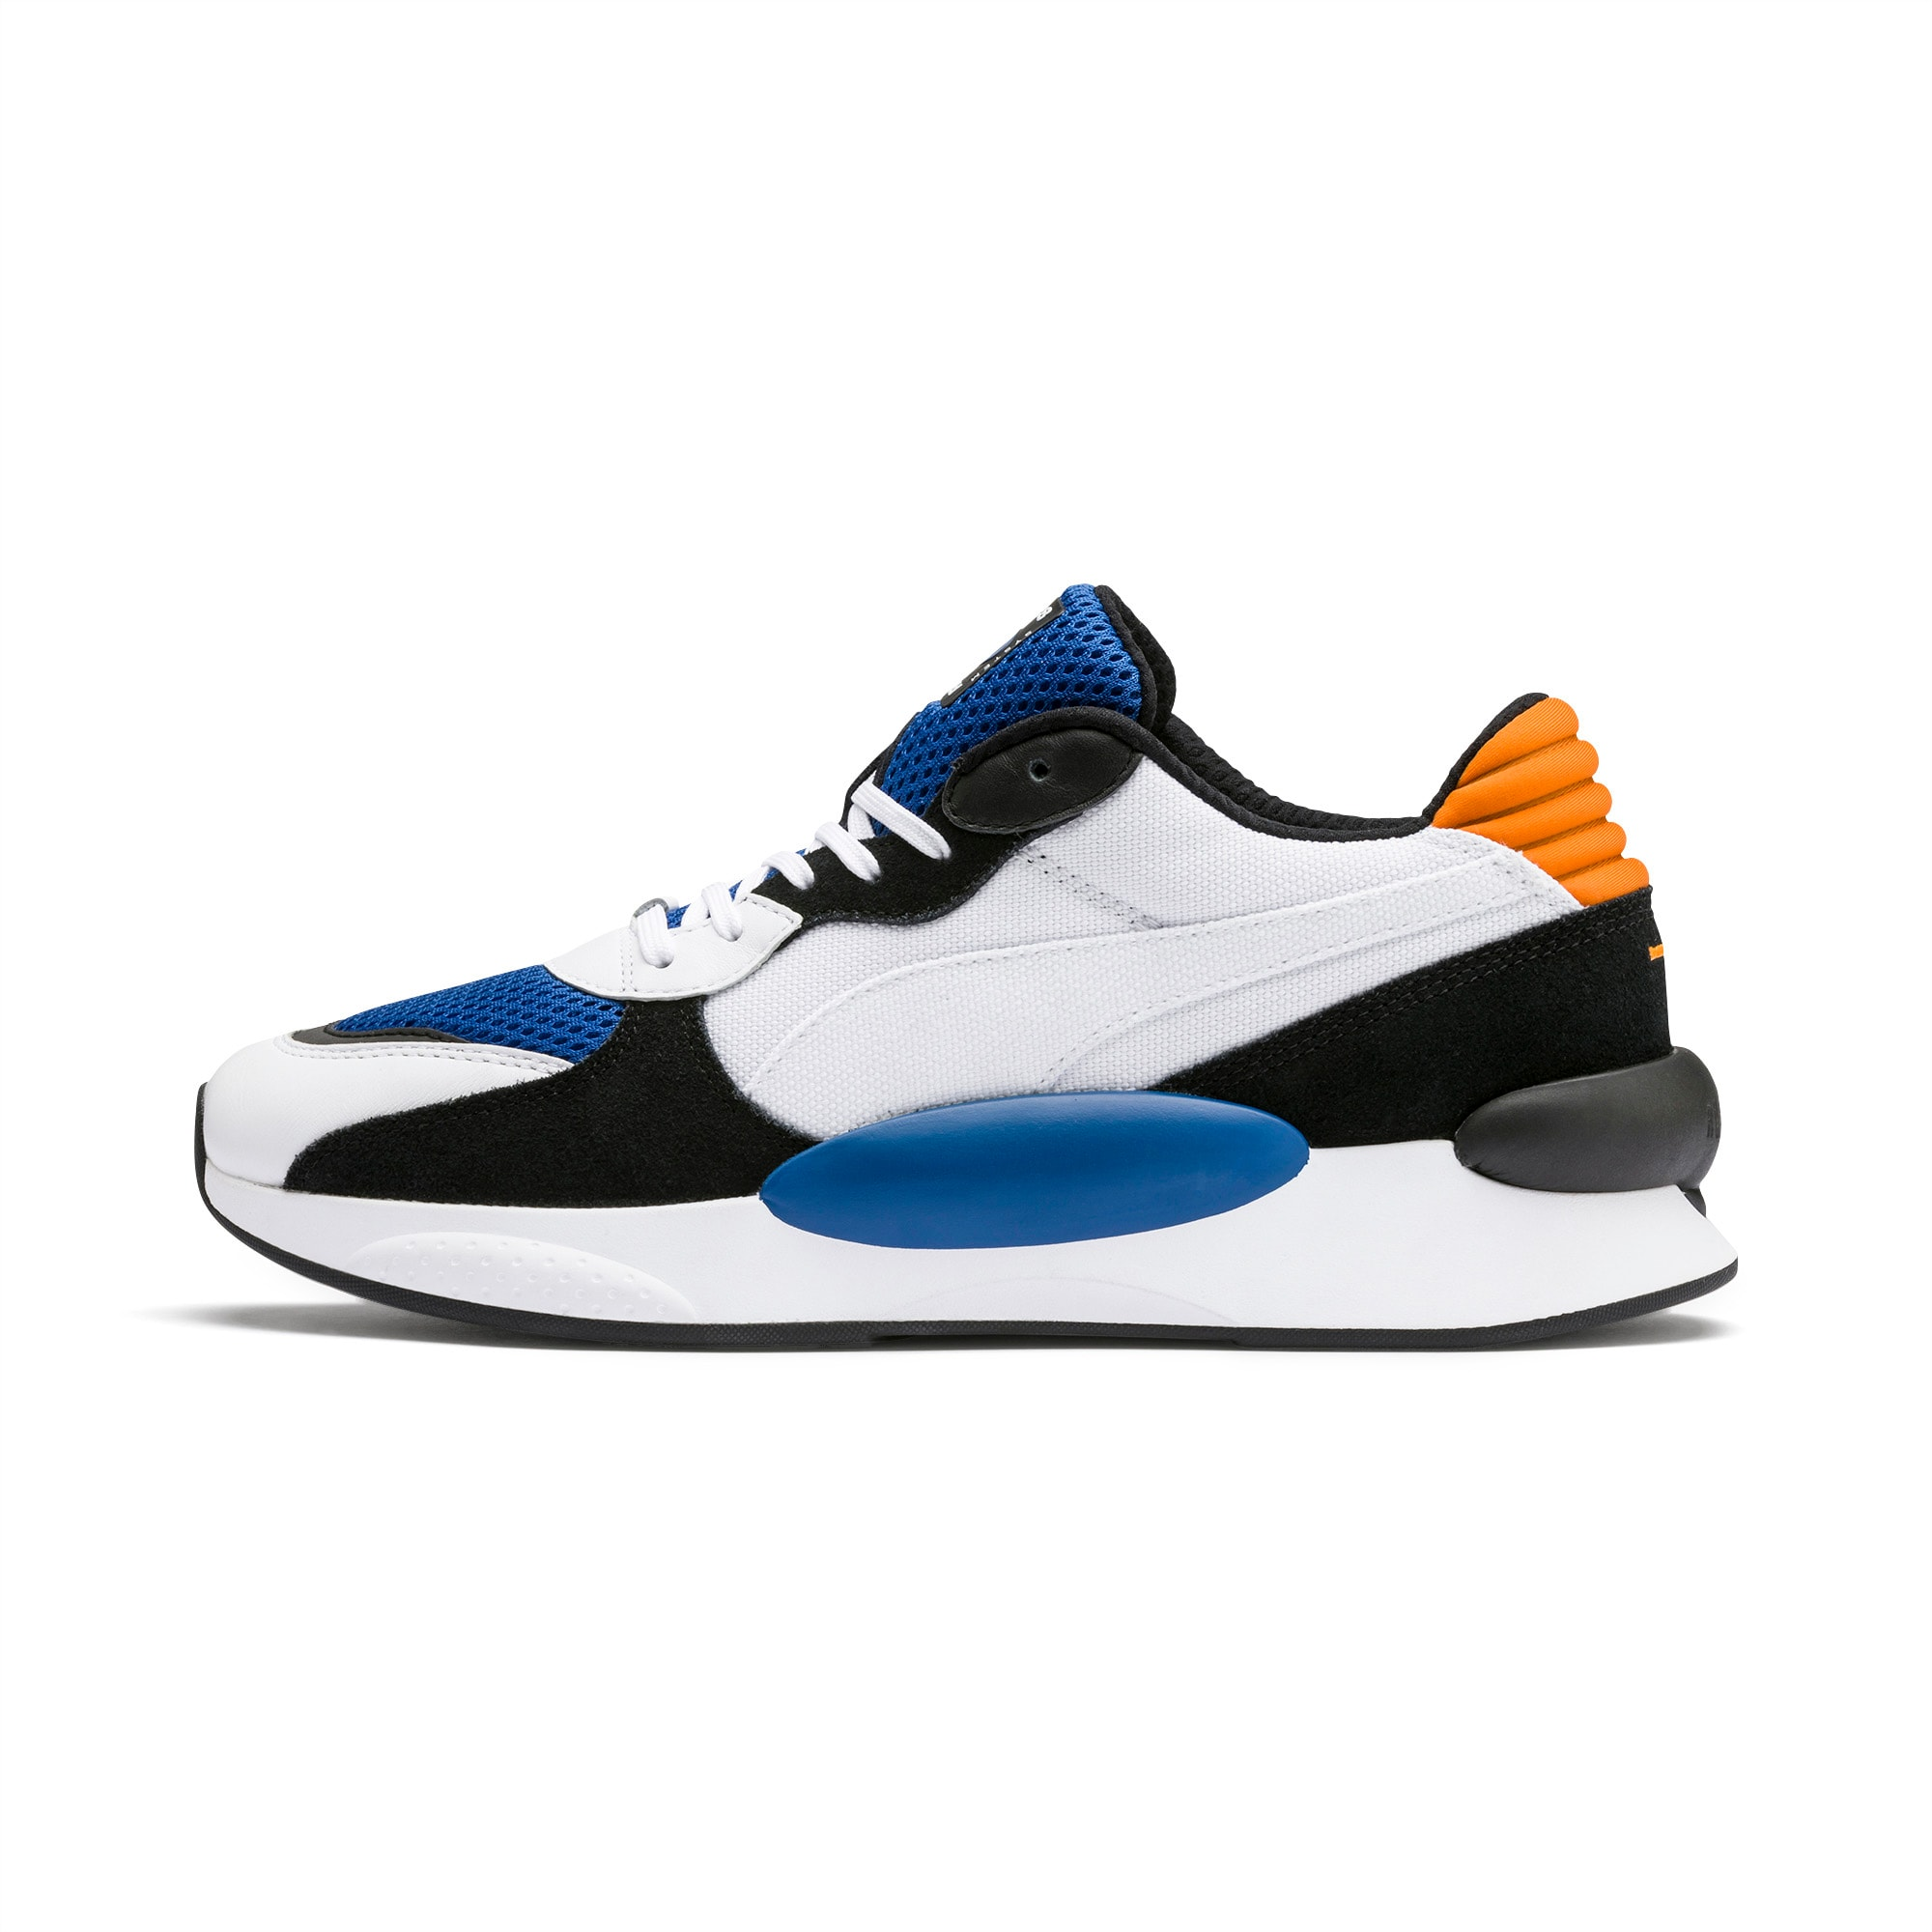 RS 9.8 Cosmic Trainers, Puma White-Galaxy Blue, large-SEA